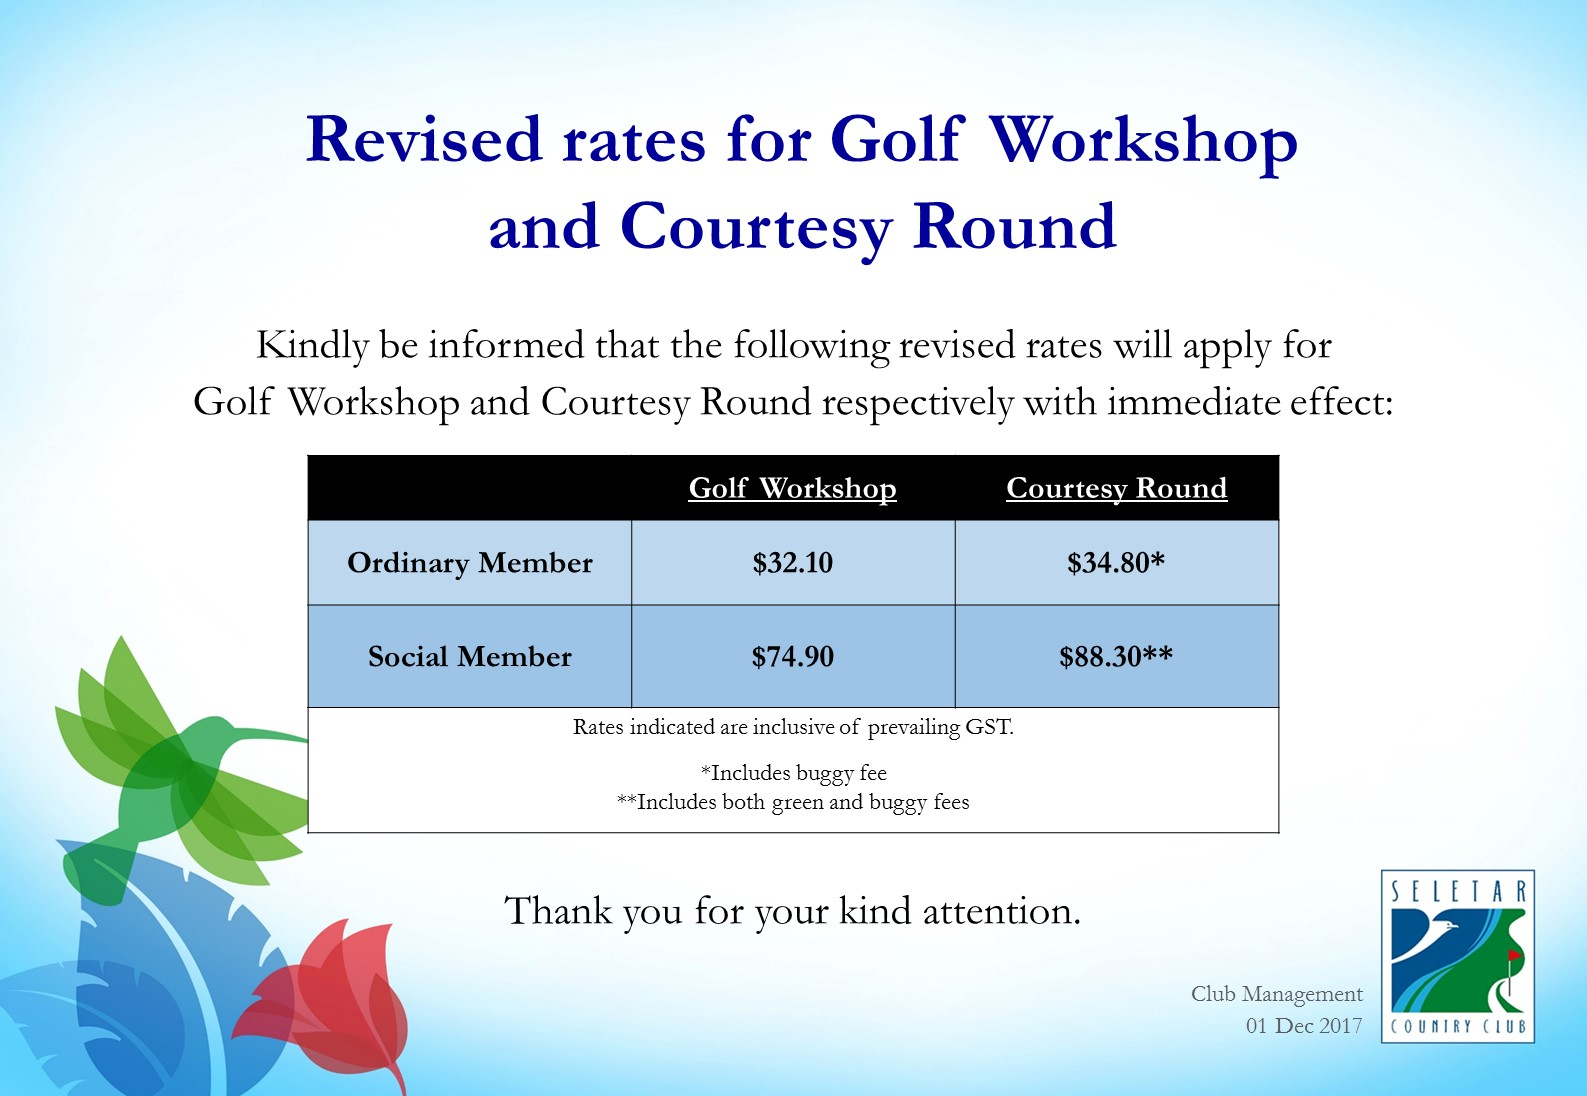 Revised rates for golf workshop and courtesy round_R2